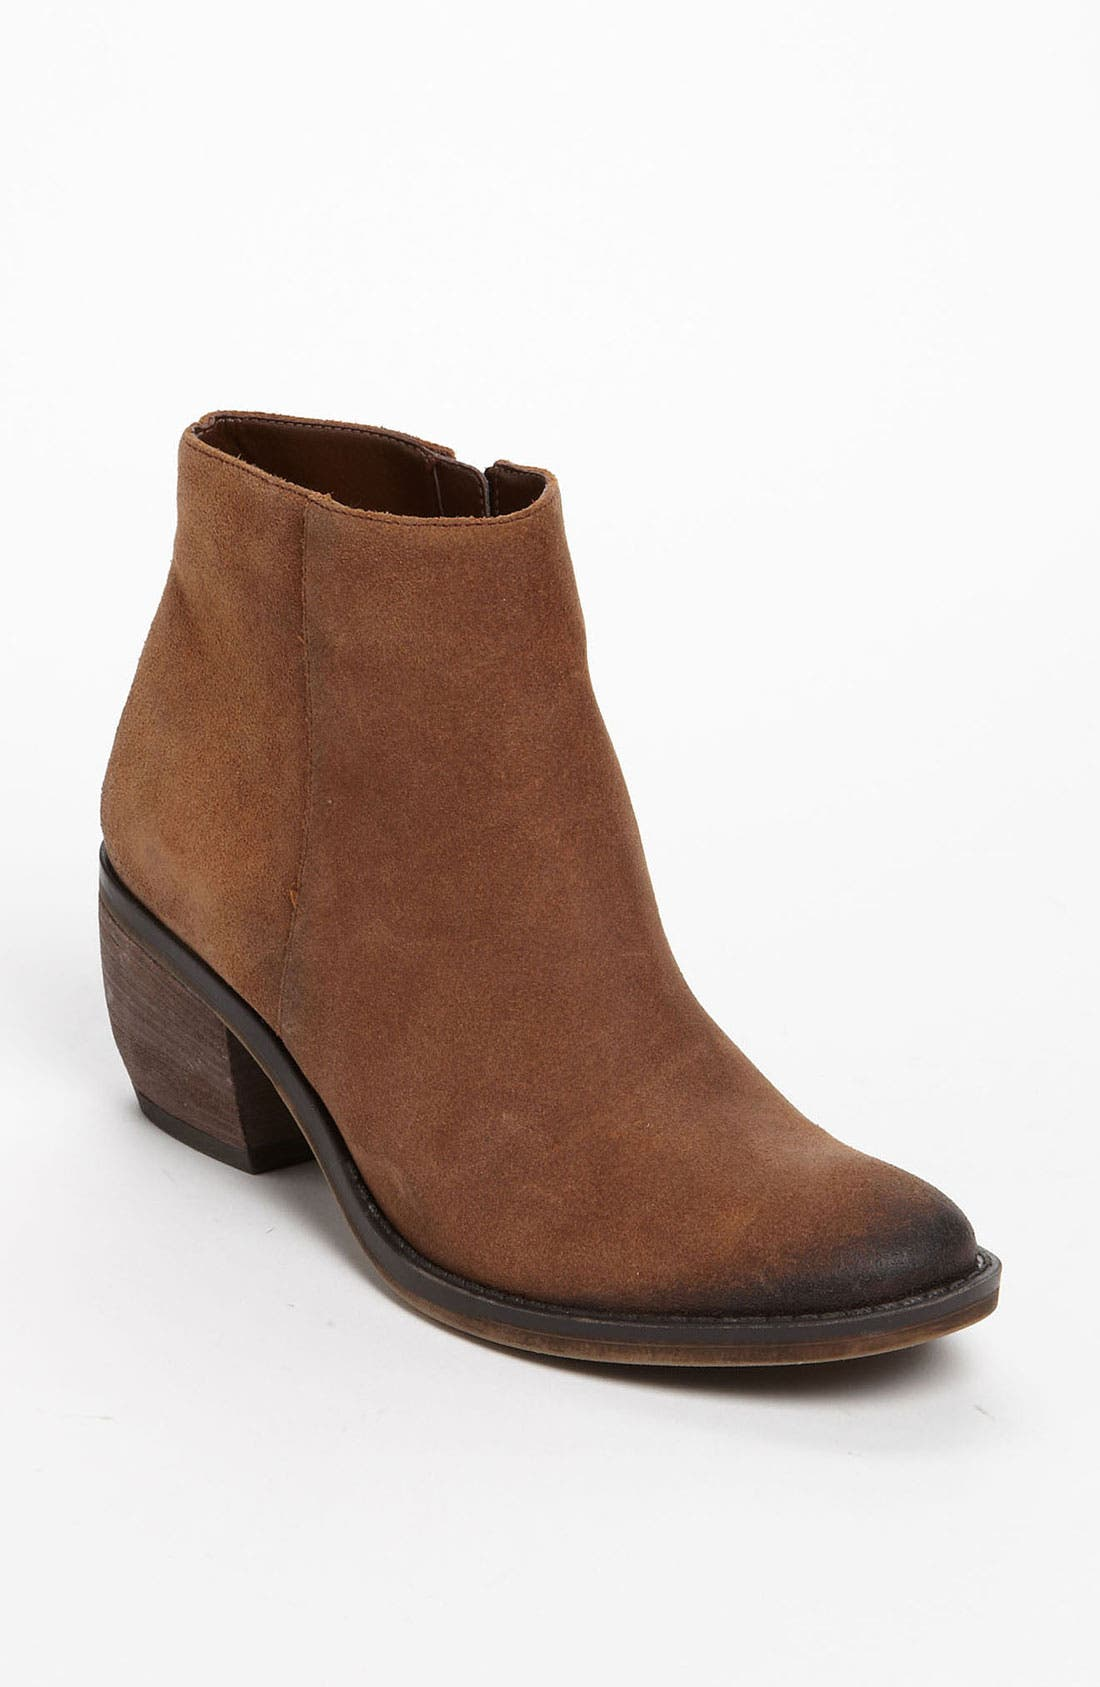 Alternate Image 1 Selected - Naturalizer 'Onset' Ankle Boot